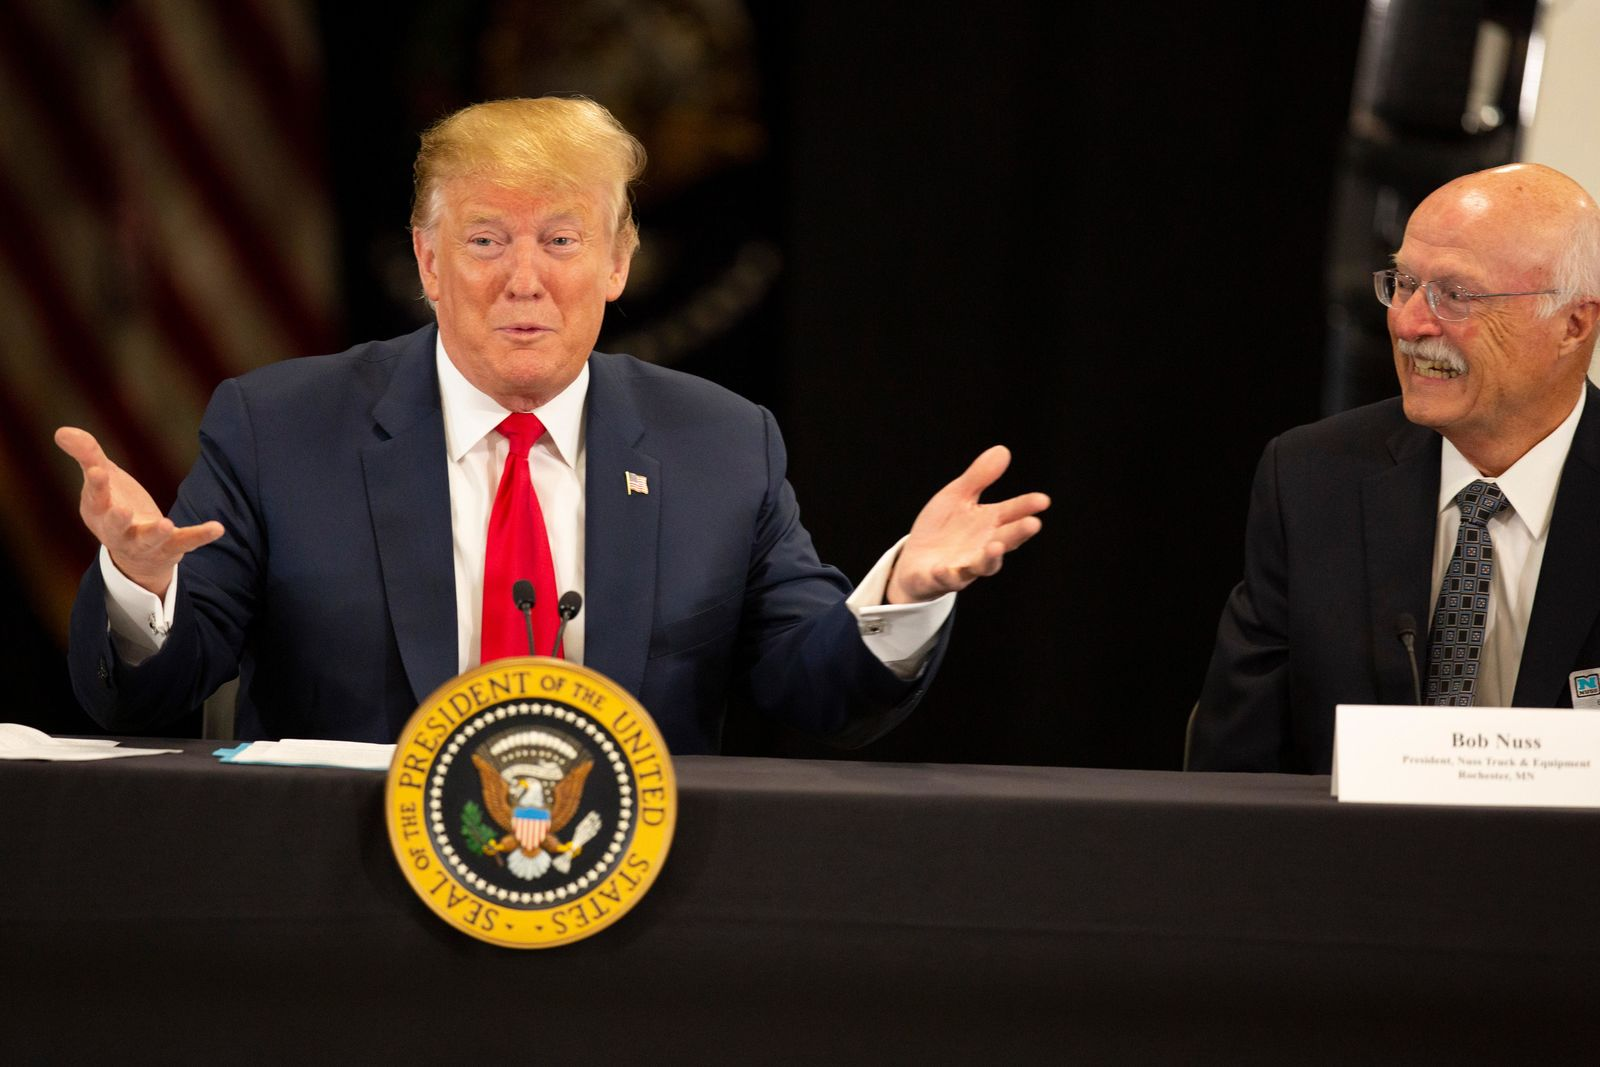 President Donald Trump talks as Bob Nuss of Nuss Truck and Equipment reacts Monday, April 15, 2019, in Burnsville, Minn. (AP Photo/Andy Clayton-King)